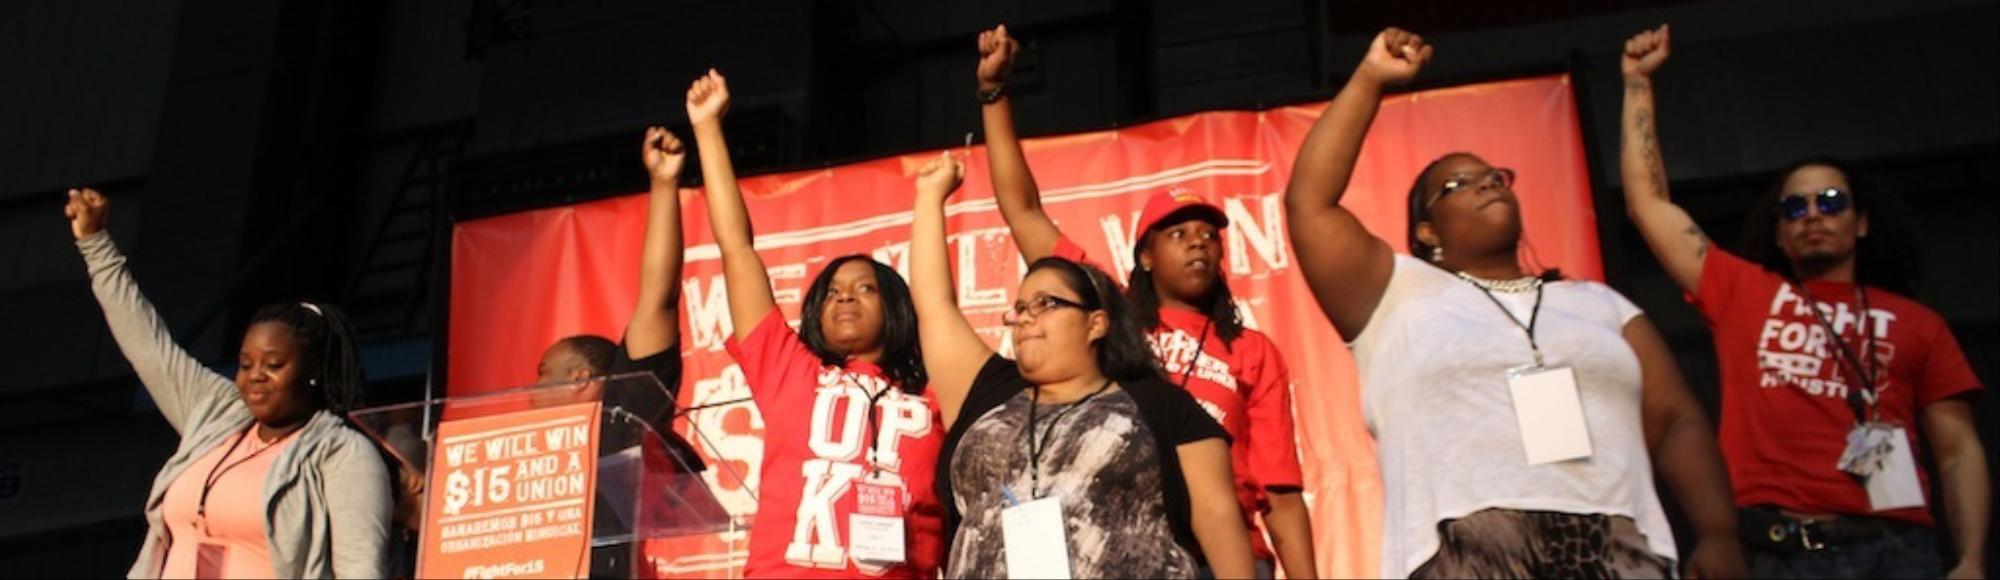 Fast Food Workers Fight for a Raise, a Union, and Dignity at First National Convention